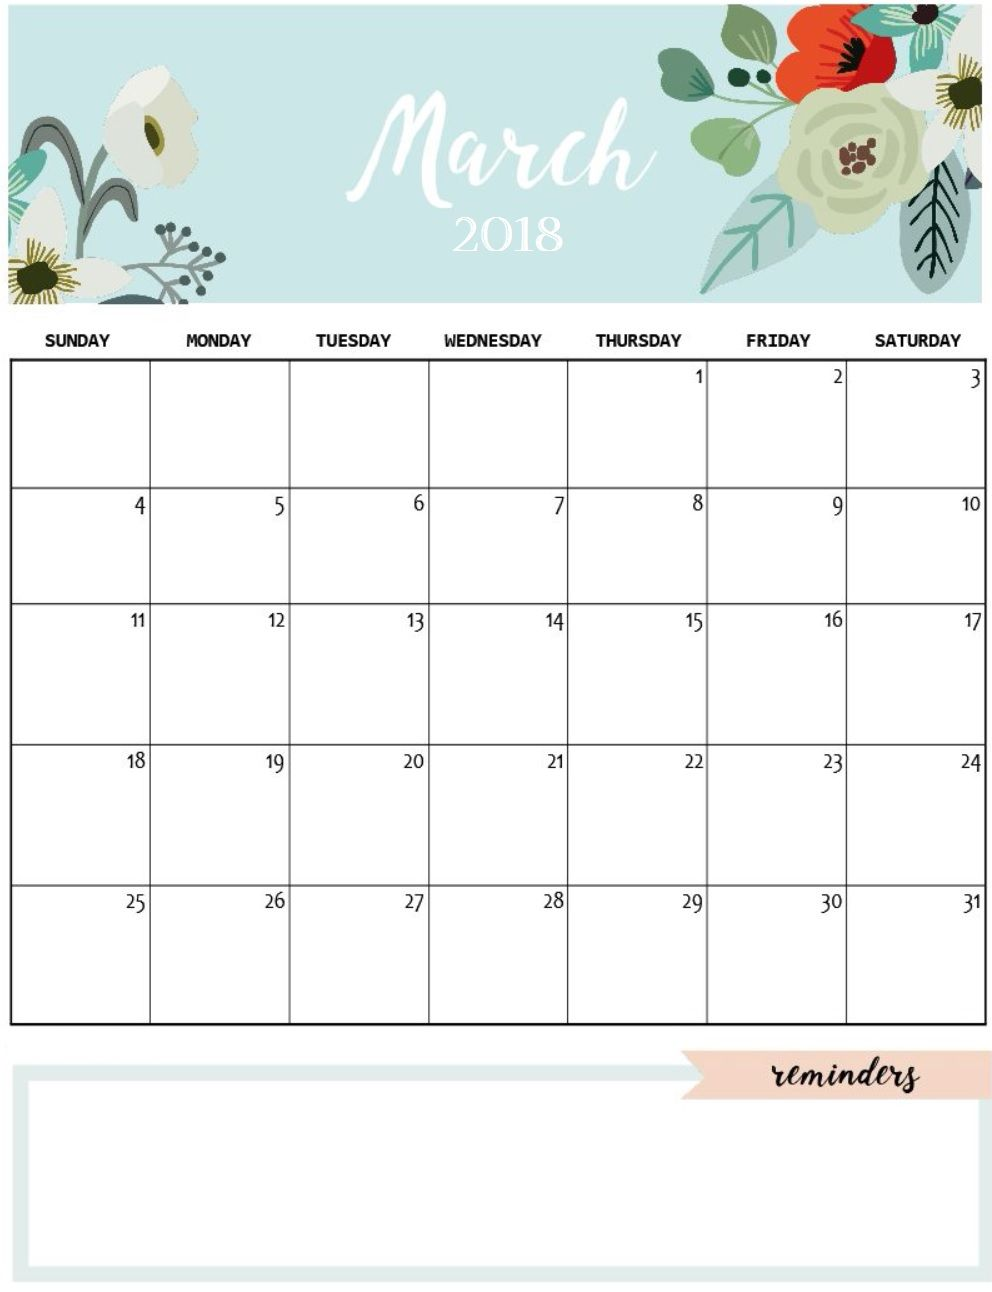 March April 2018 Subscriptions: Cute March 2018 Calendar To Print #printable #calendario